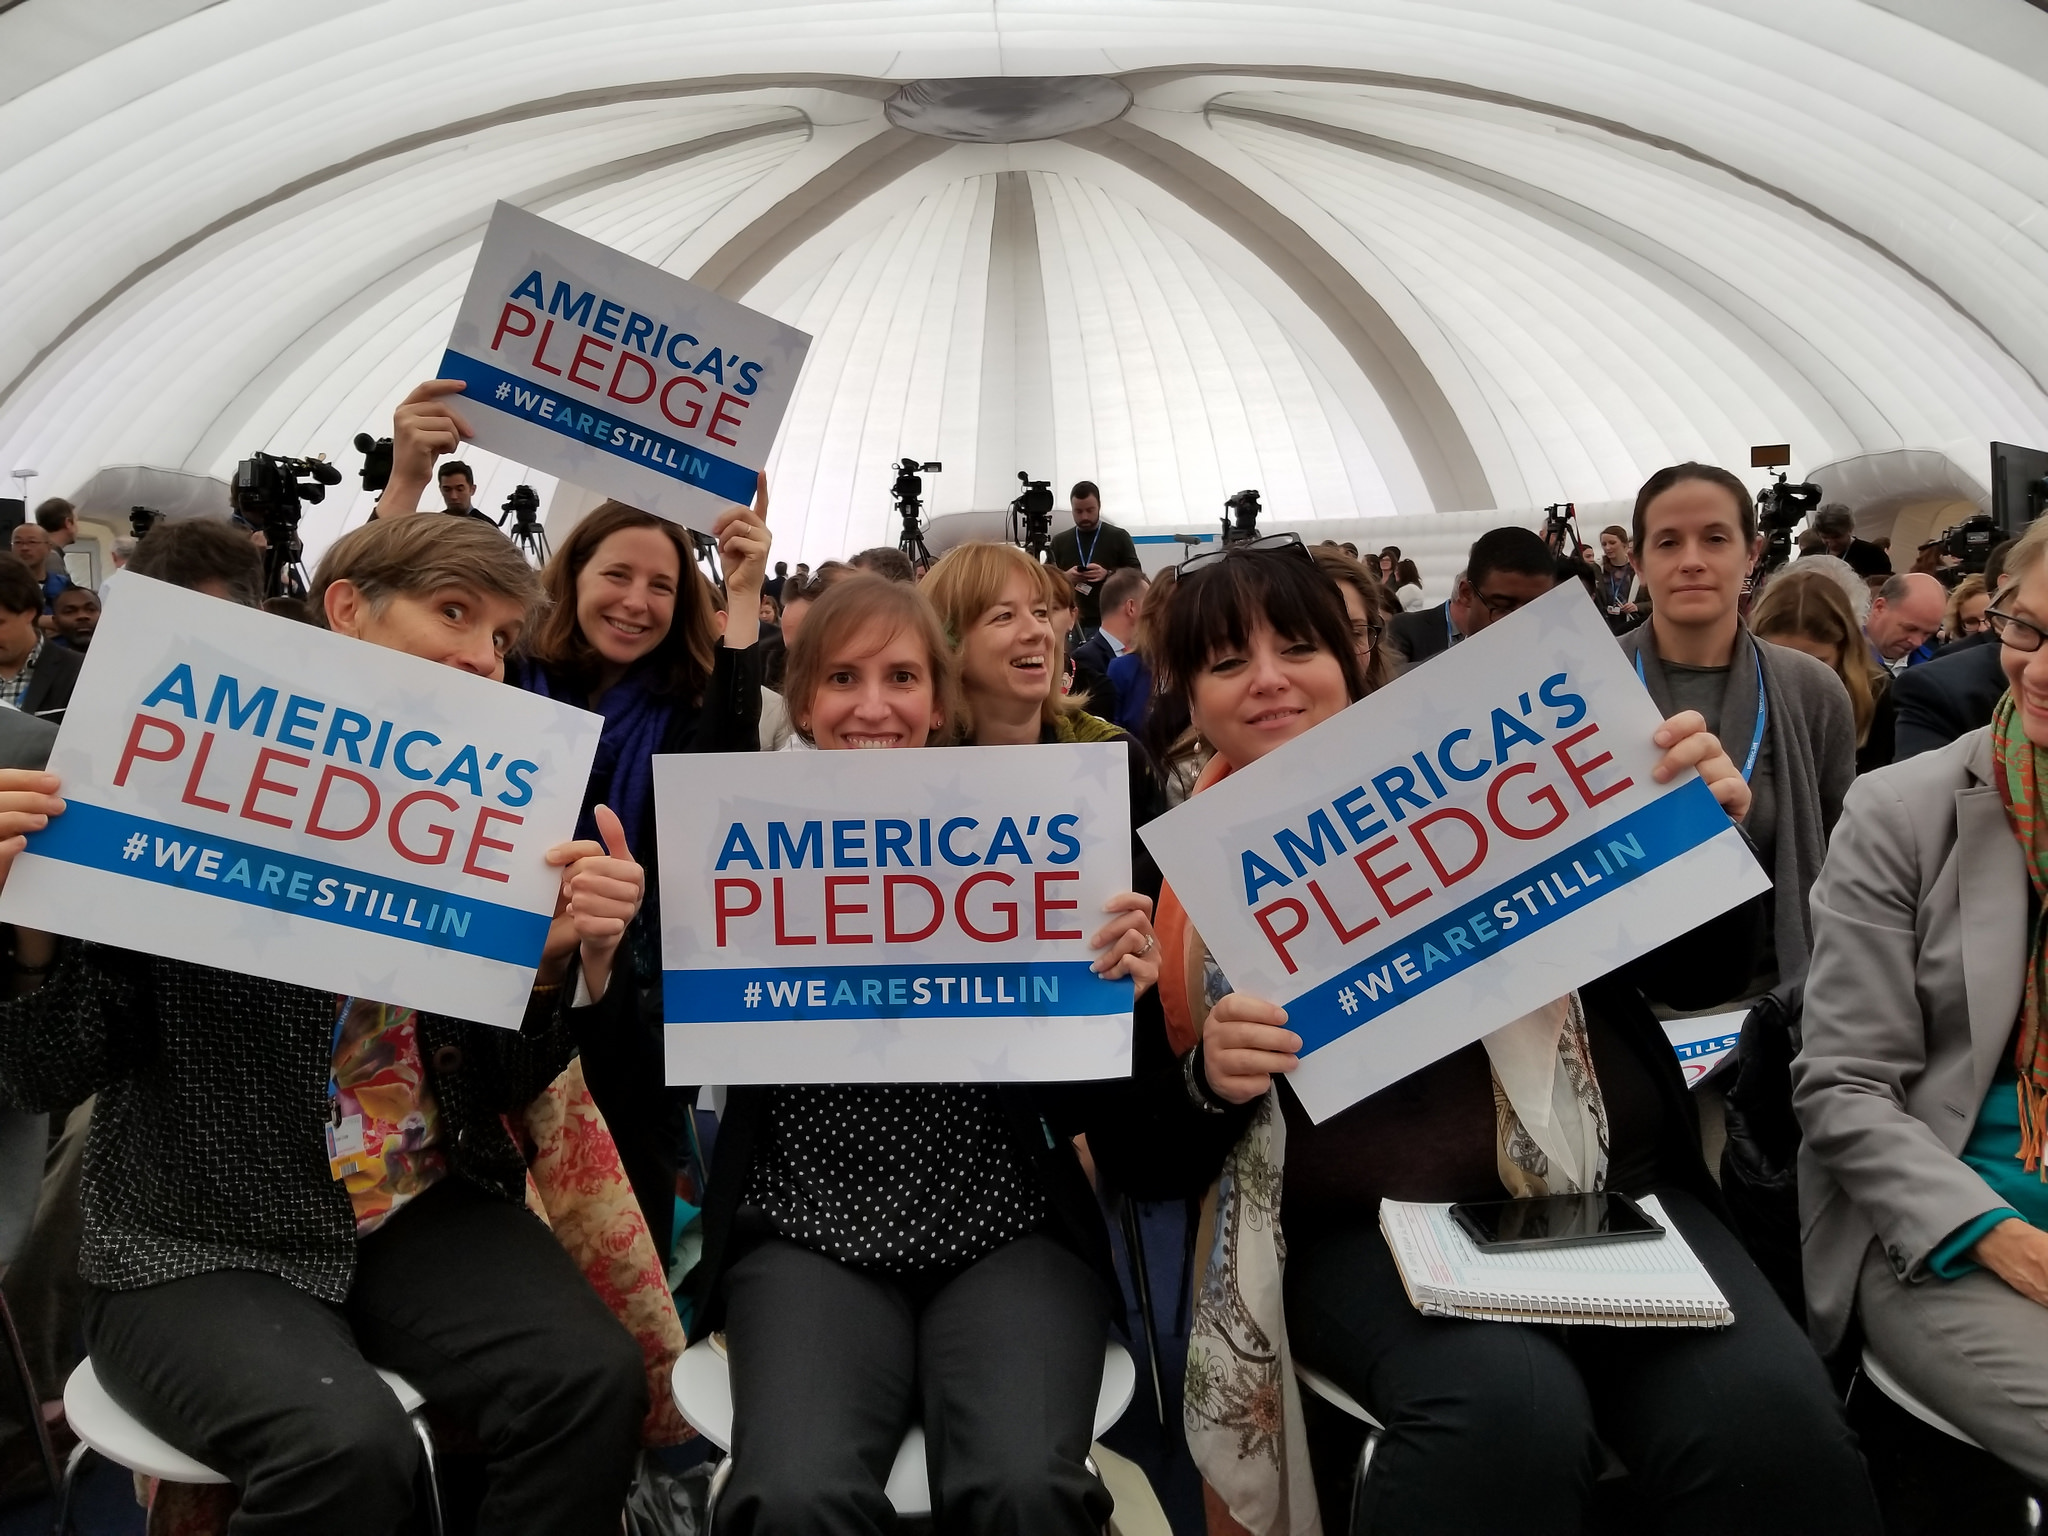 <p>At an event where America's Pledge was announced. Flickr/WRI</p>